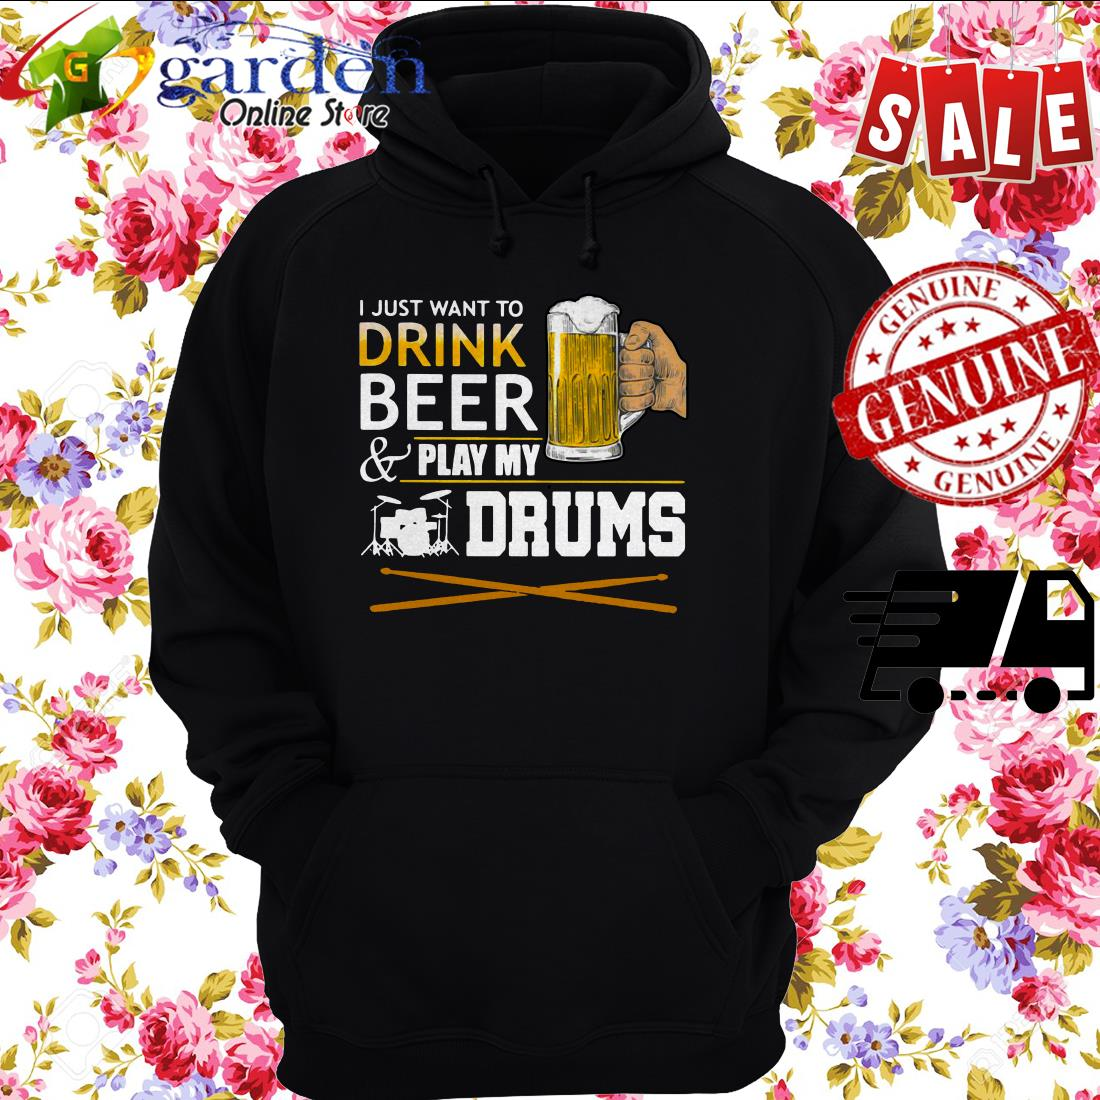 I Just Want To Drink Beer And Play My Drums hoodie